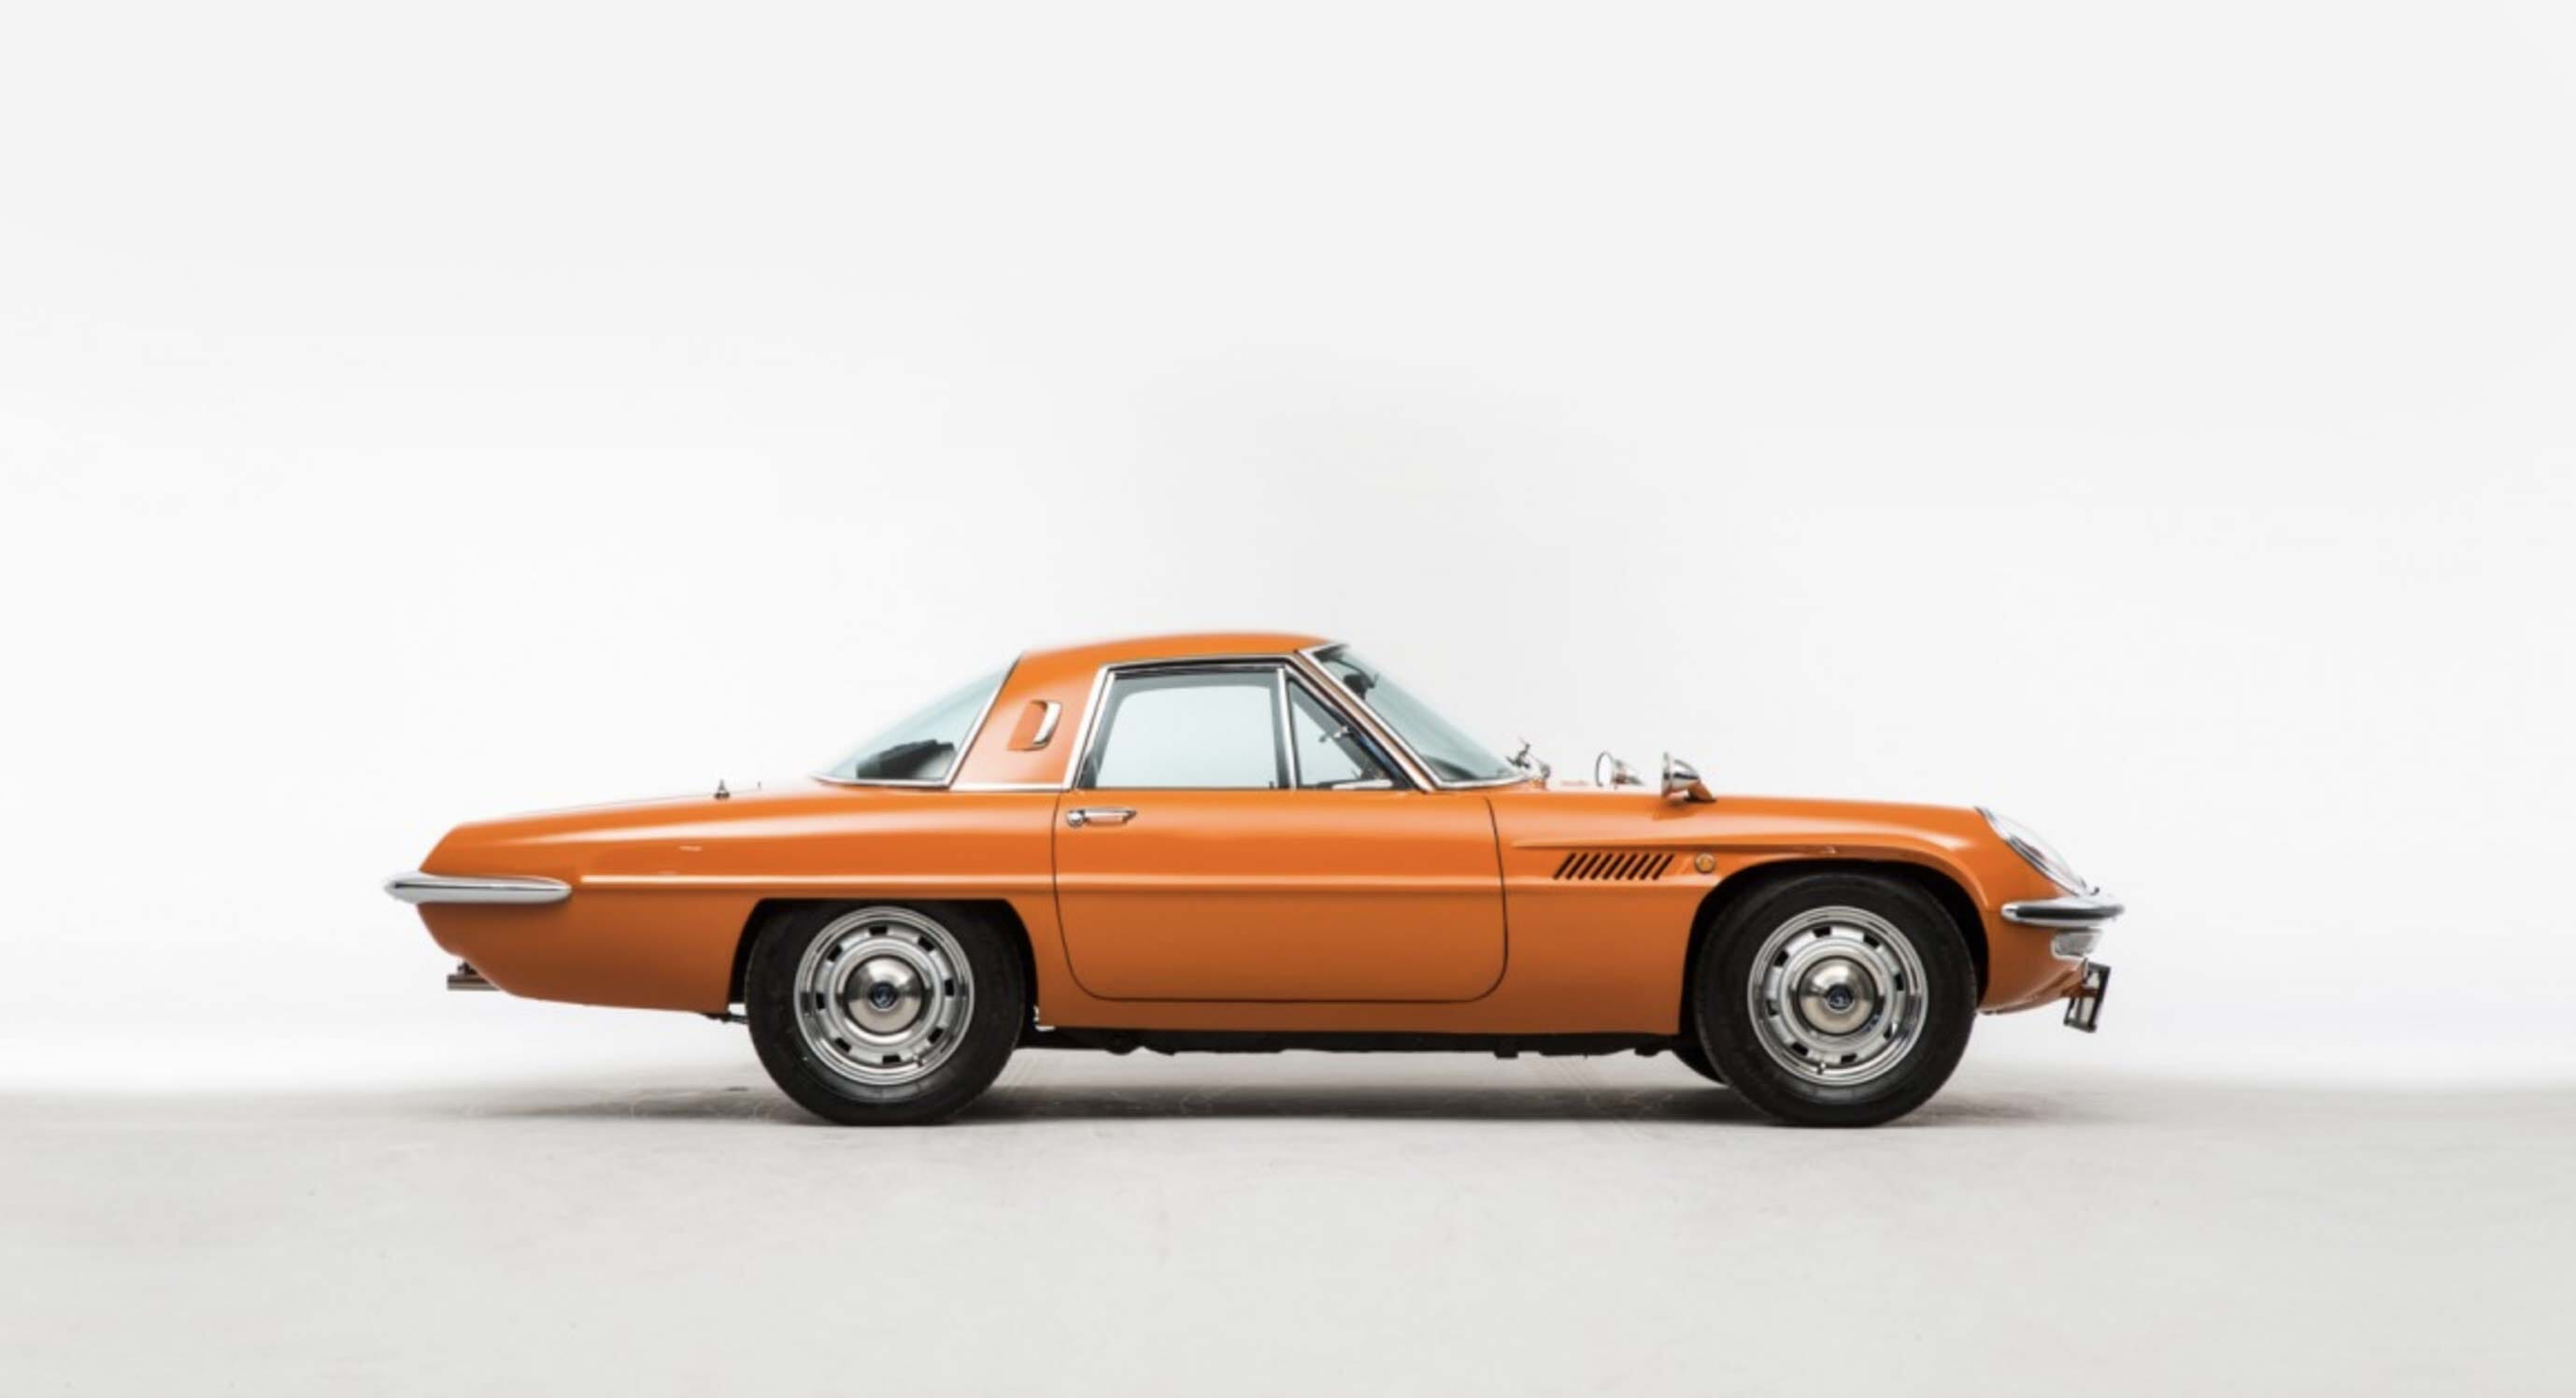 Classic Car Find Of The Week: 1968 Mazda Cosmo 110 S